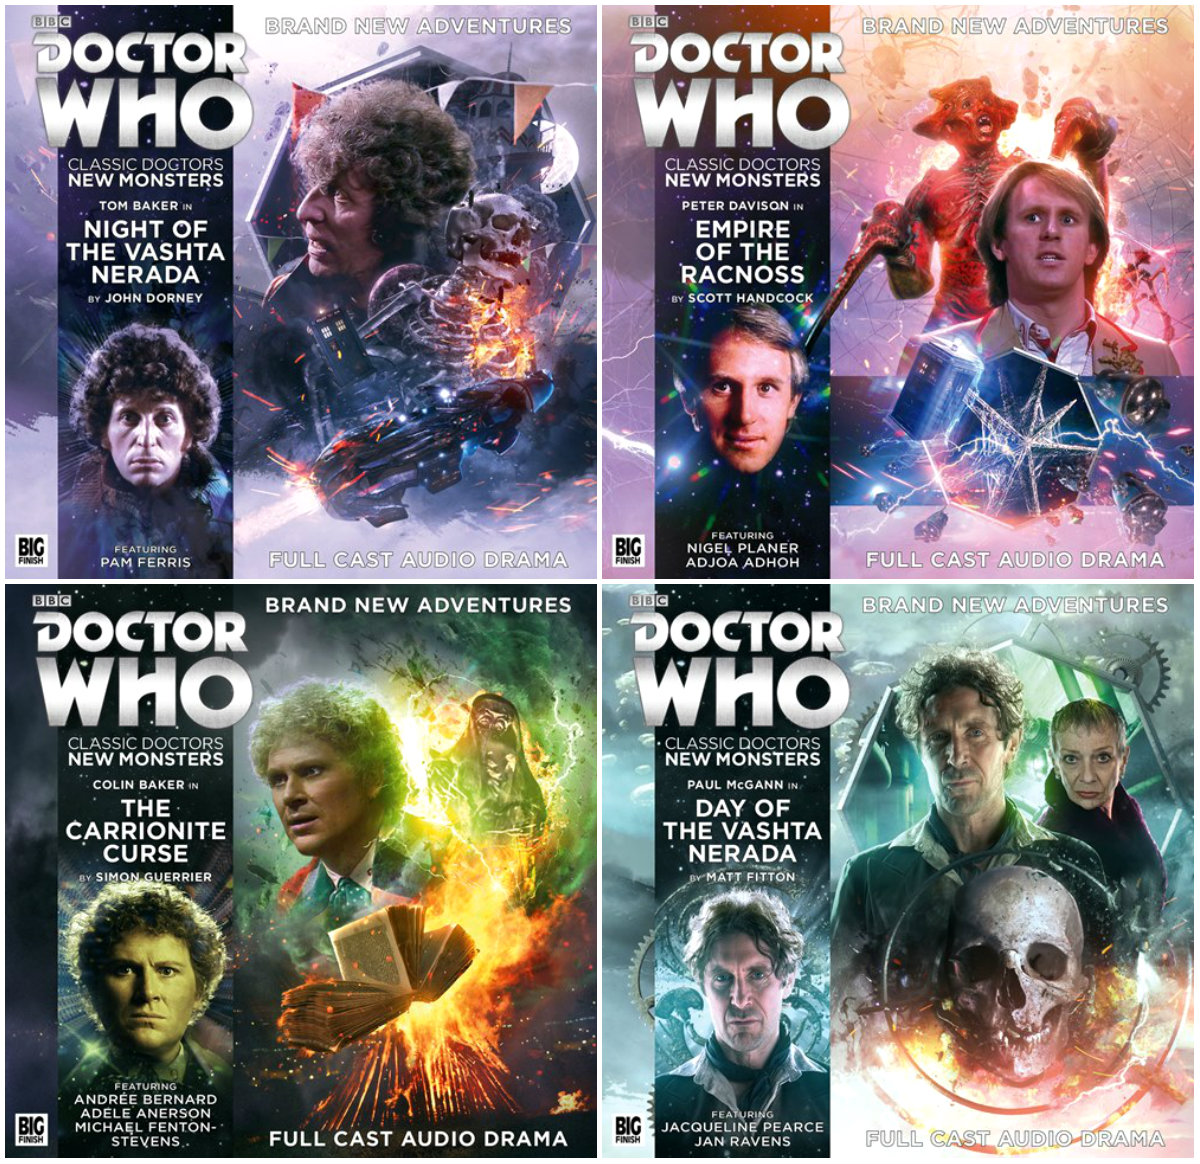 plano crítico Classic Doctors, New Monsters Volume Two audiodramas doctor who audiodramas